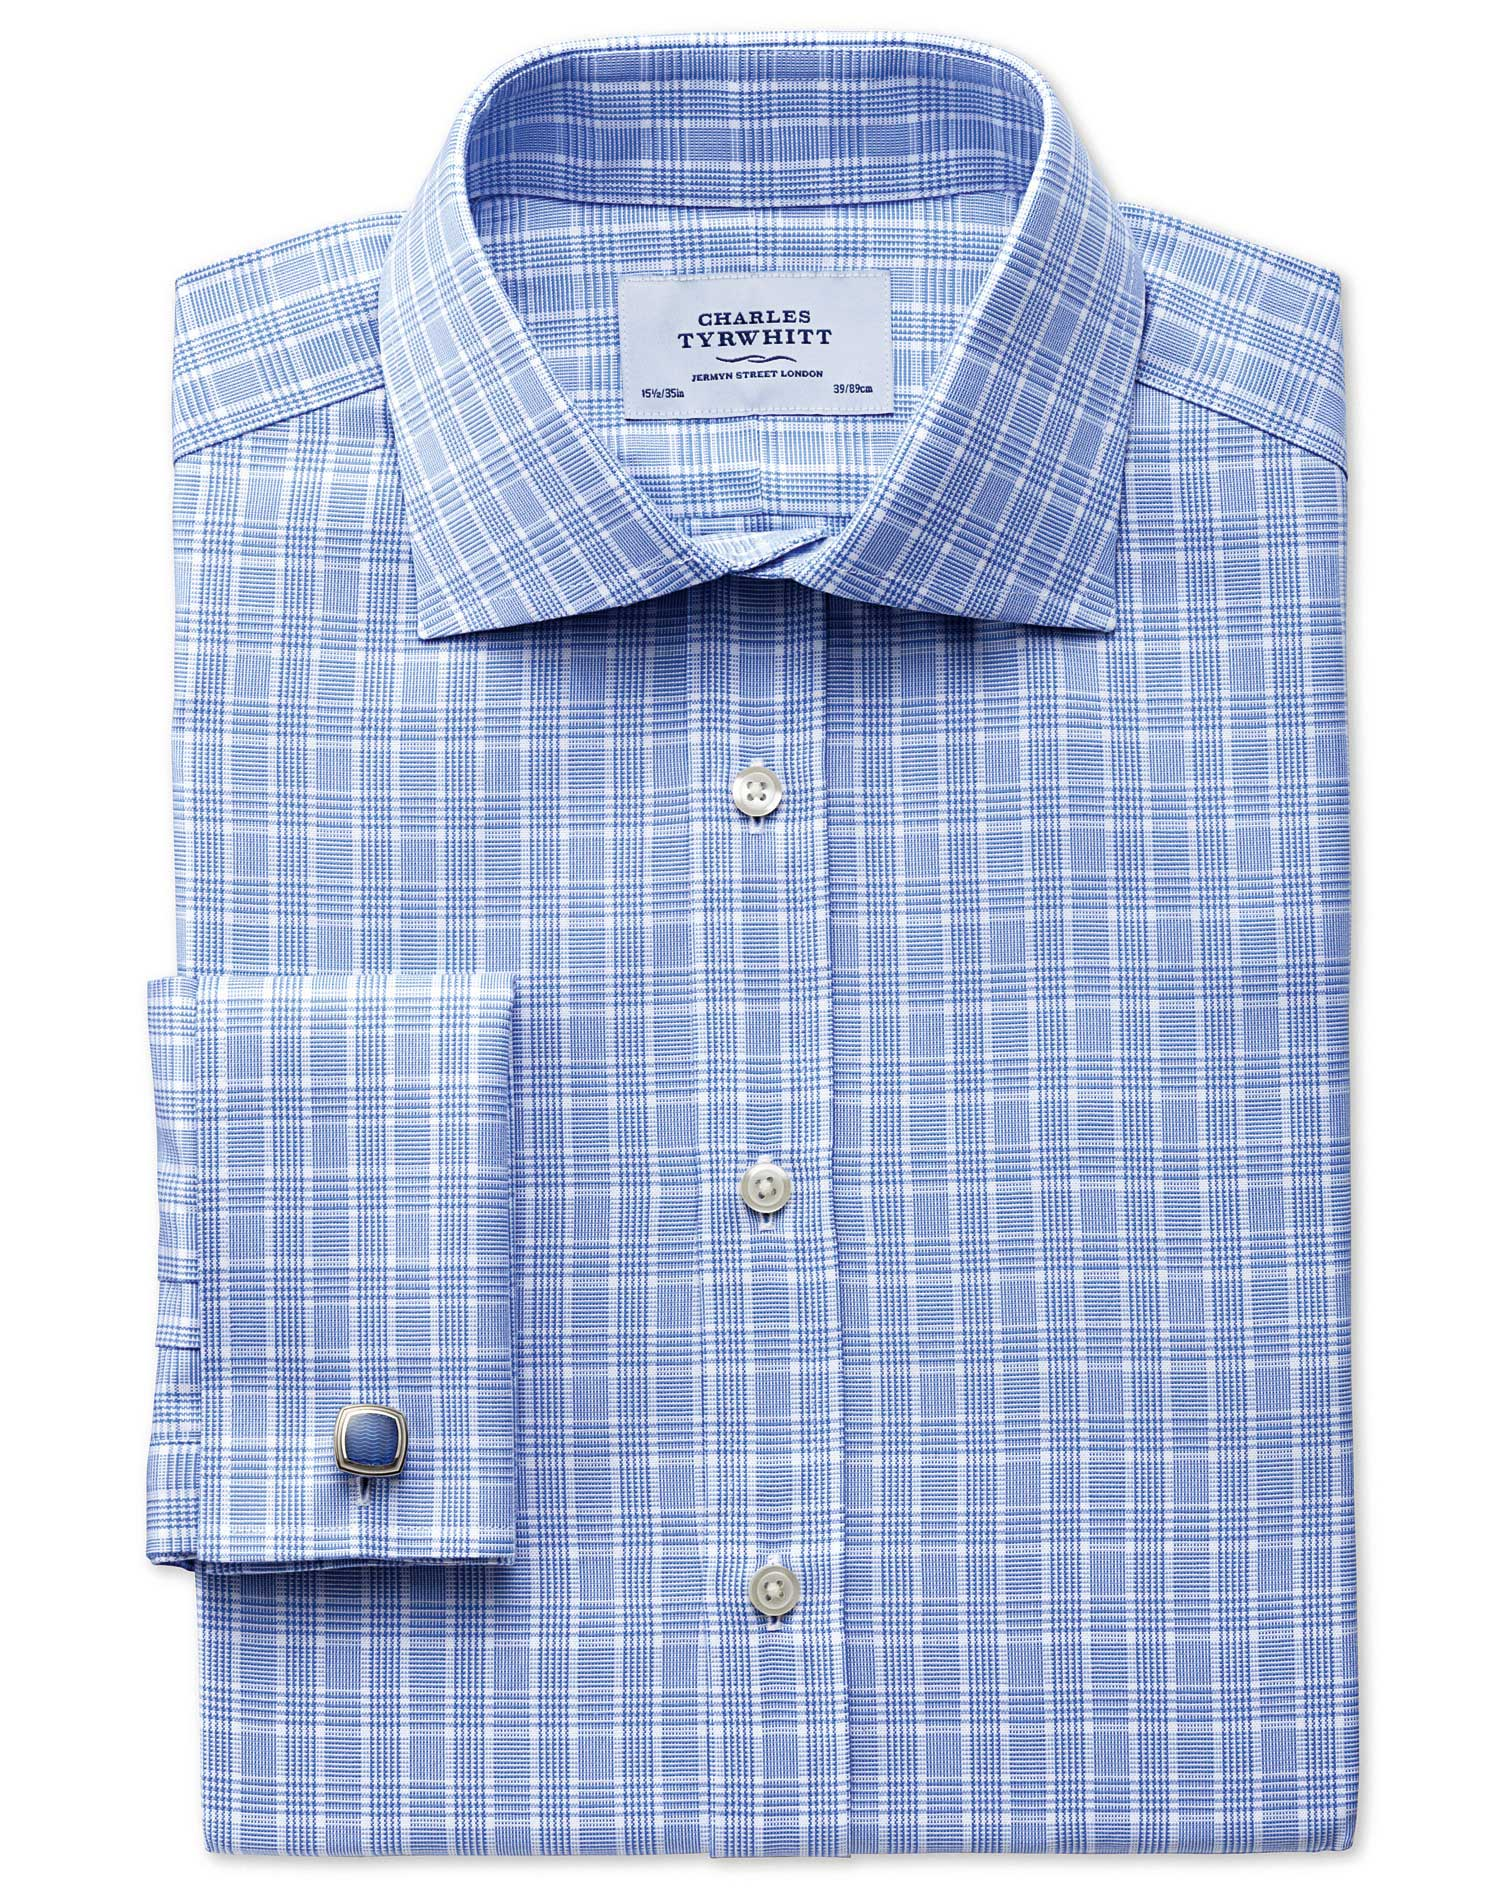 Slim Fit Prince Of Wales Basketweave Sky Blue Cotton Formal Shirt Double Cuff Size 14.5/33 by Charle